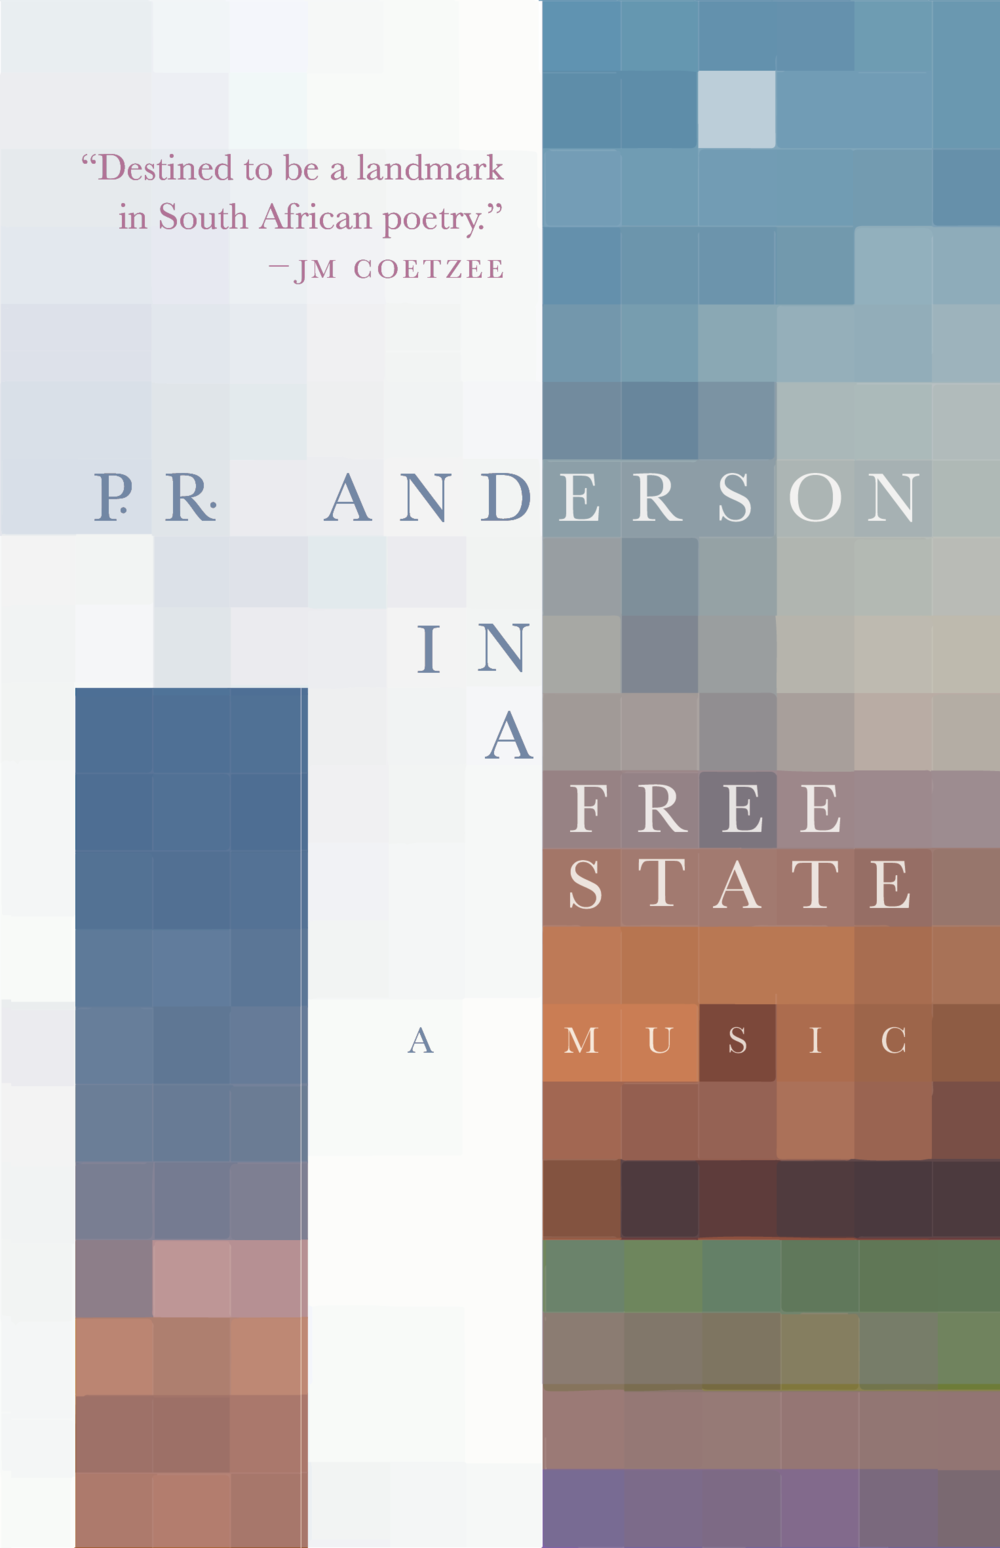 anderson_in-a-free-state_cover.png